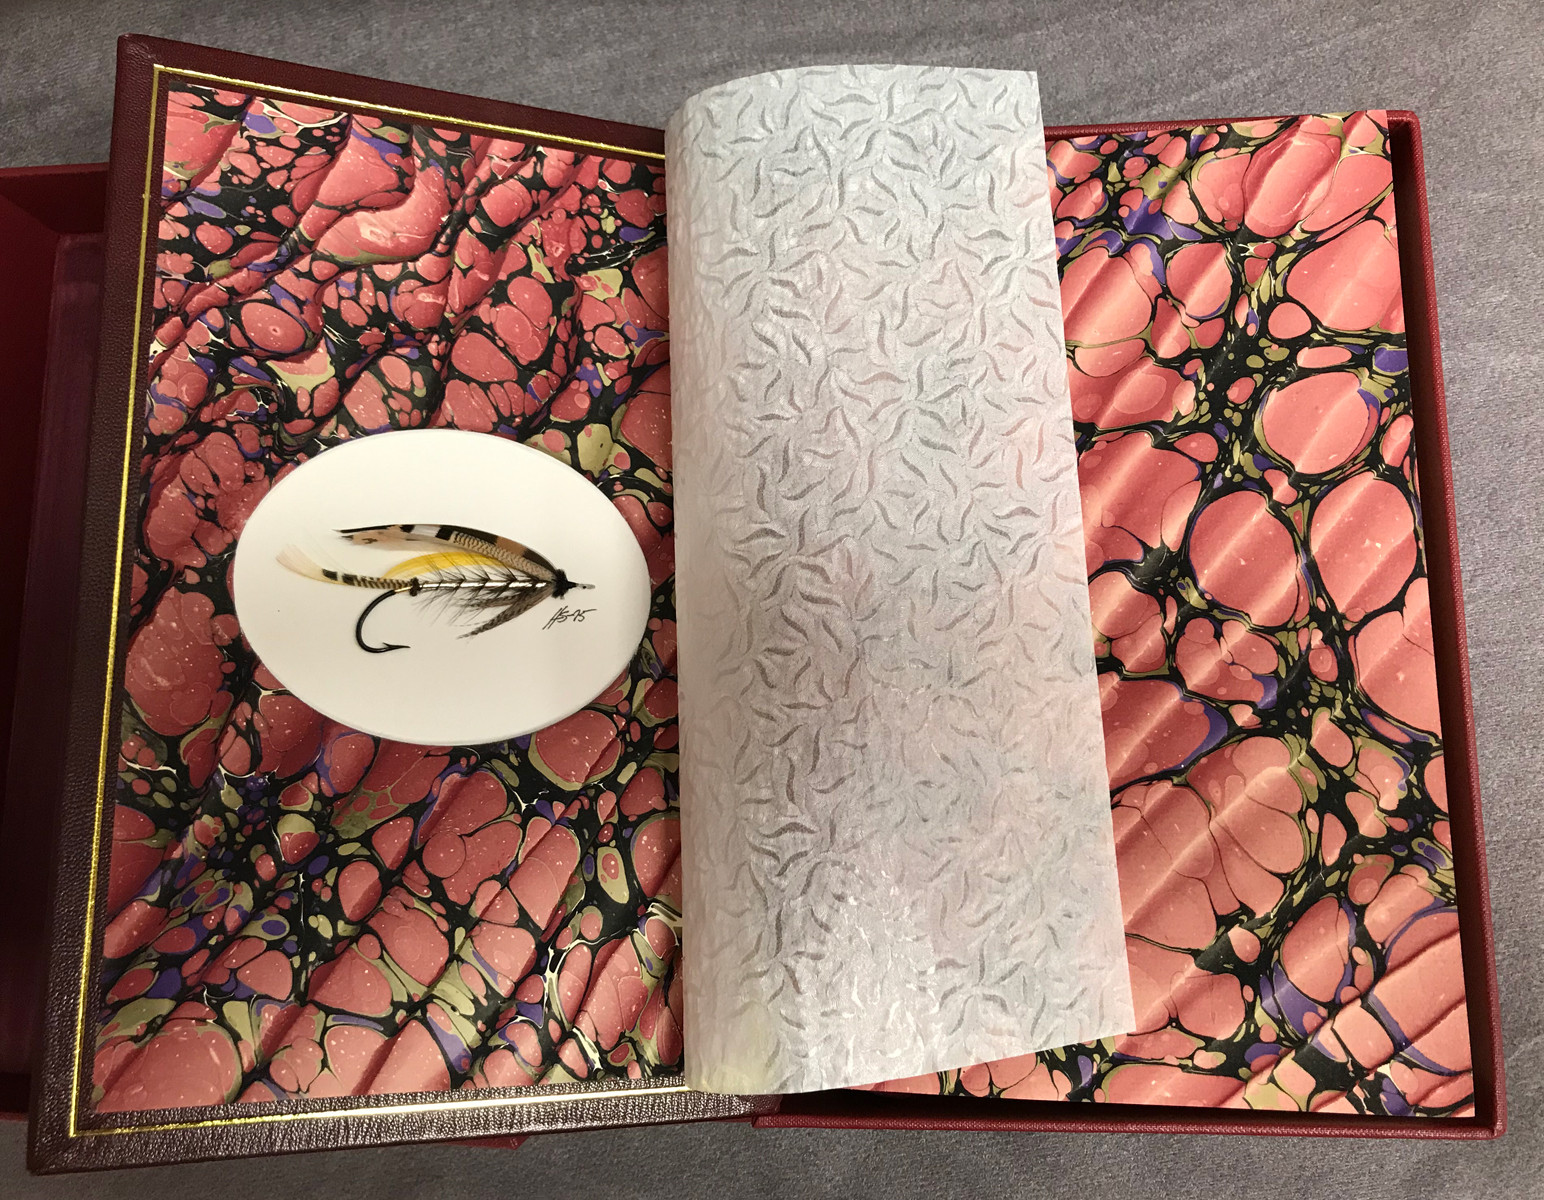 Image 2 of The Book of the Salmon, in two parts